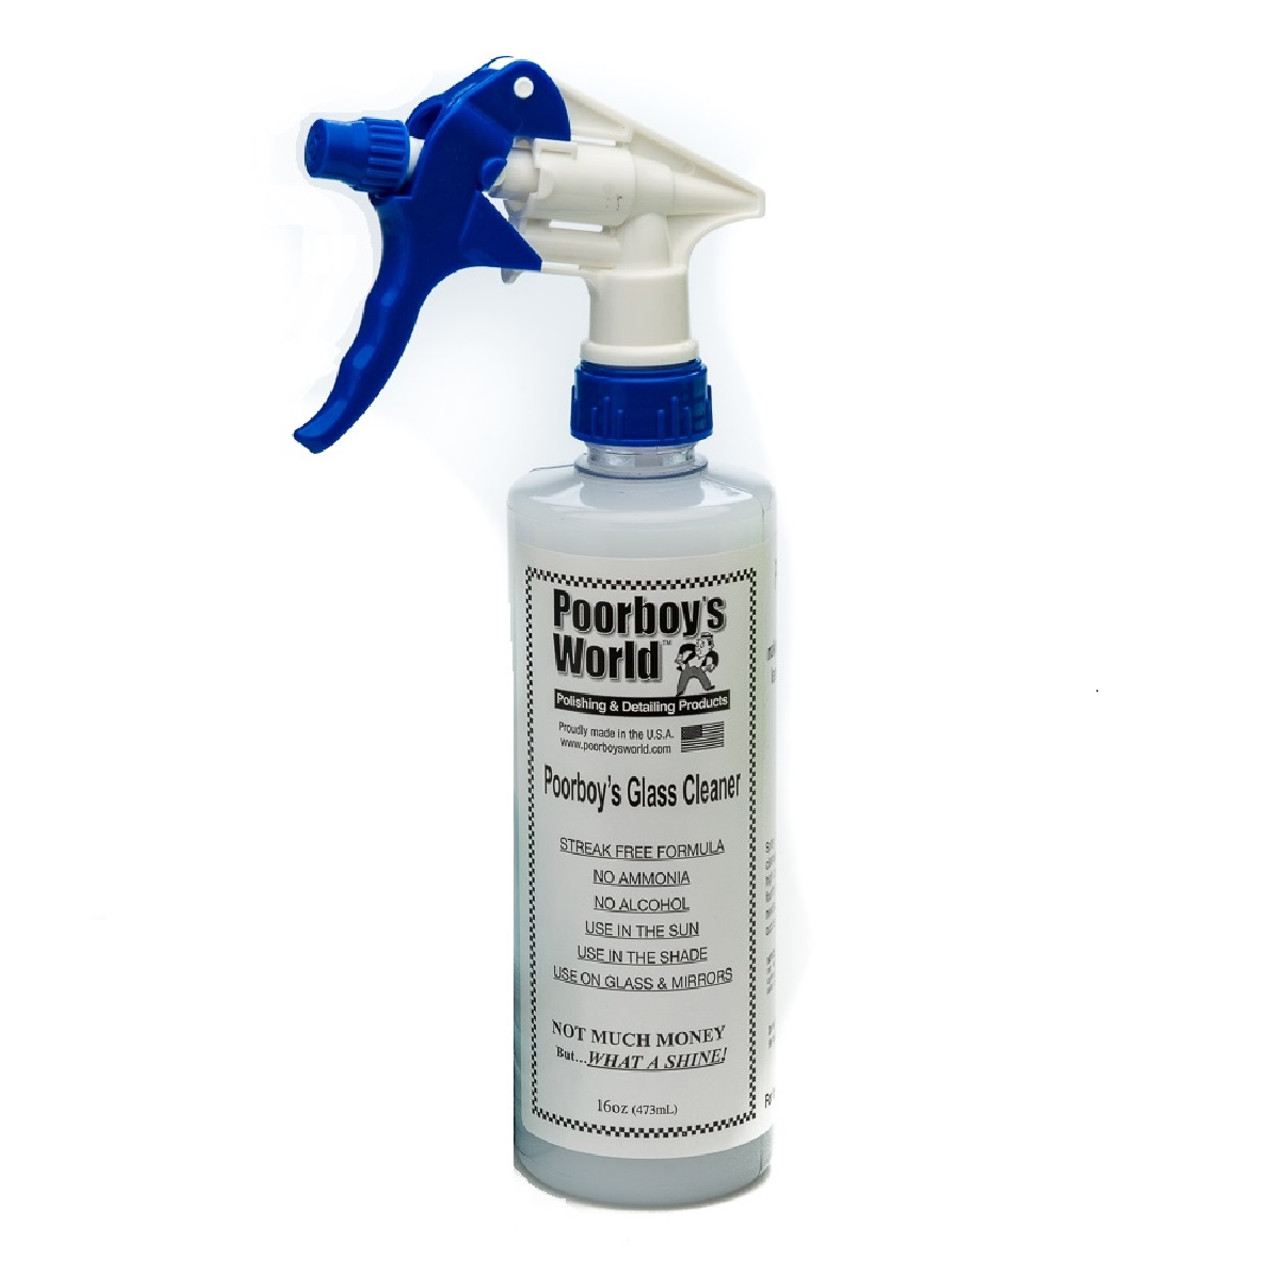 Poorboy's World Poorboy's World Glass Cleaner 32oz w/Sprayer